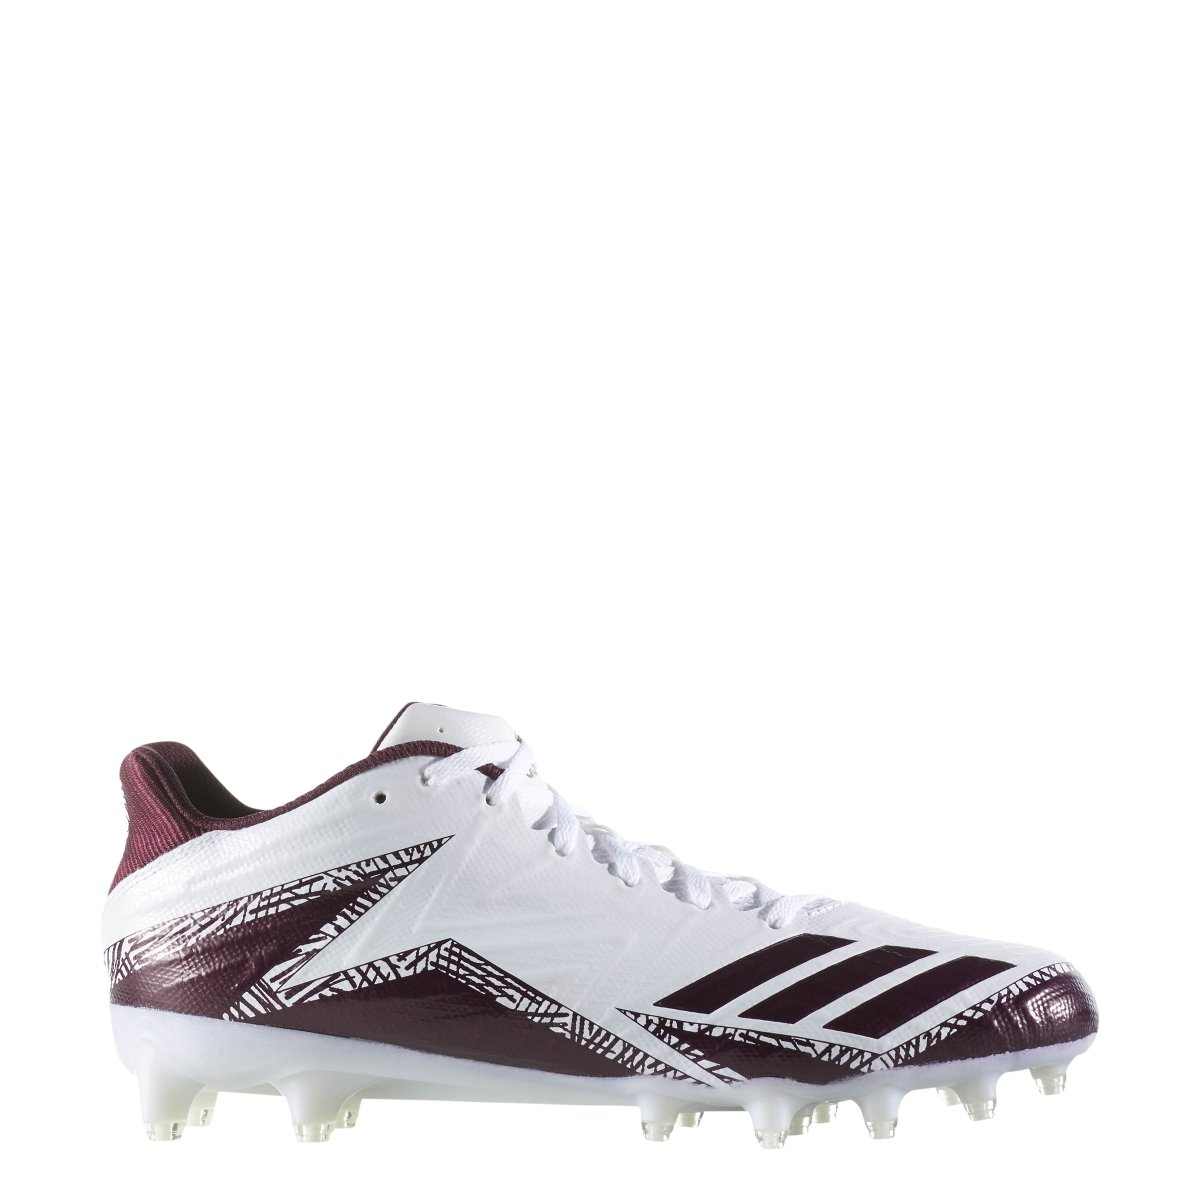 new product 95f00 5d1a3 Amazon.com  adidas Freak X Carbon Low Cleat - Mens Football 15  WhiteMaroonMaroon  Football